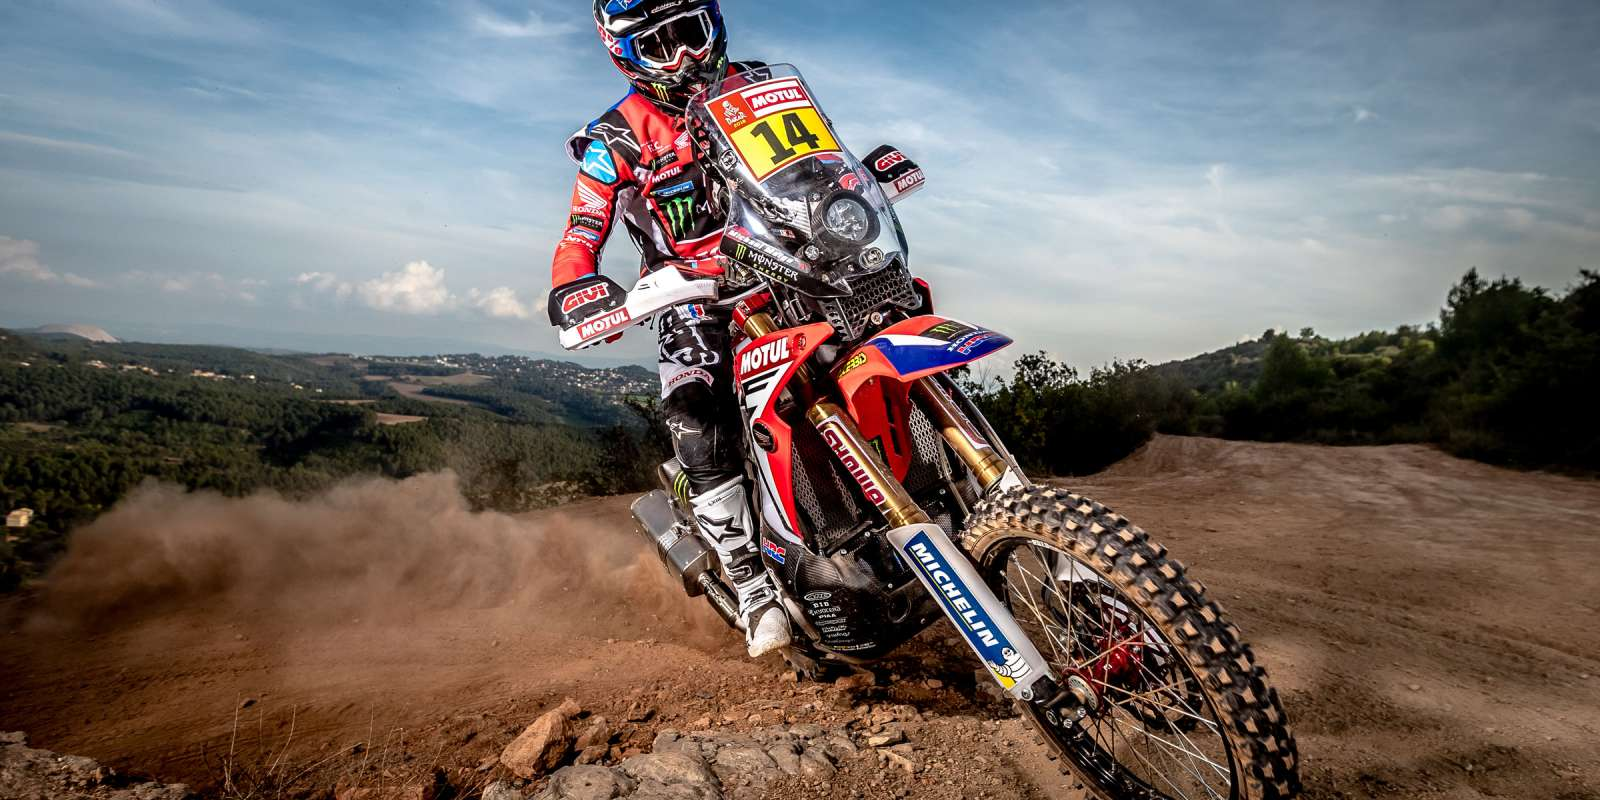 Michael Metge at the 2018 Dakar HRC Photoshoot